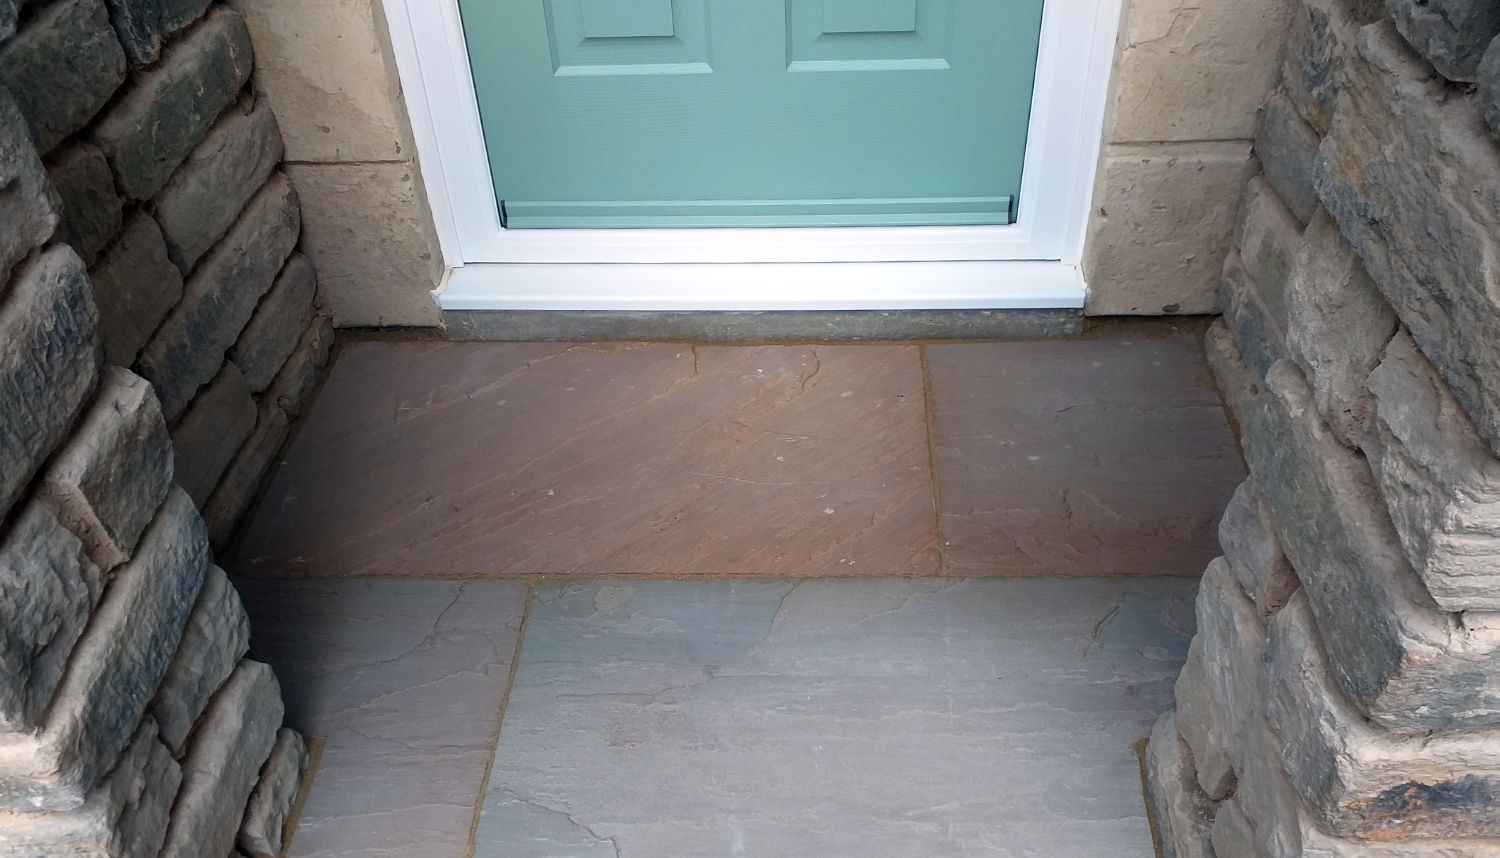 Floor paving detail, Porch with traditional Oak Frame, stone work, pitched roof complete with rain gutters